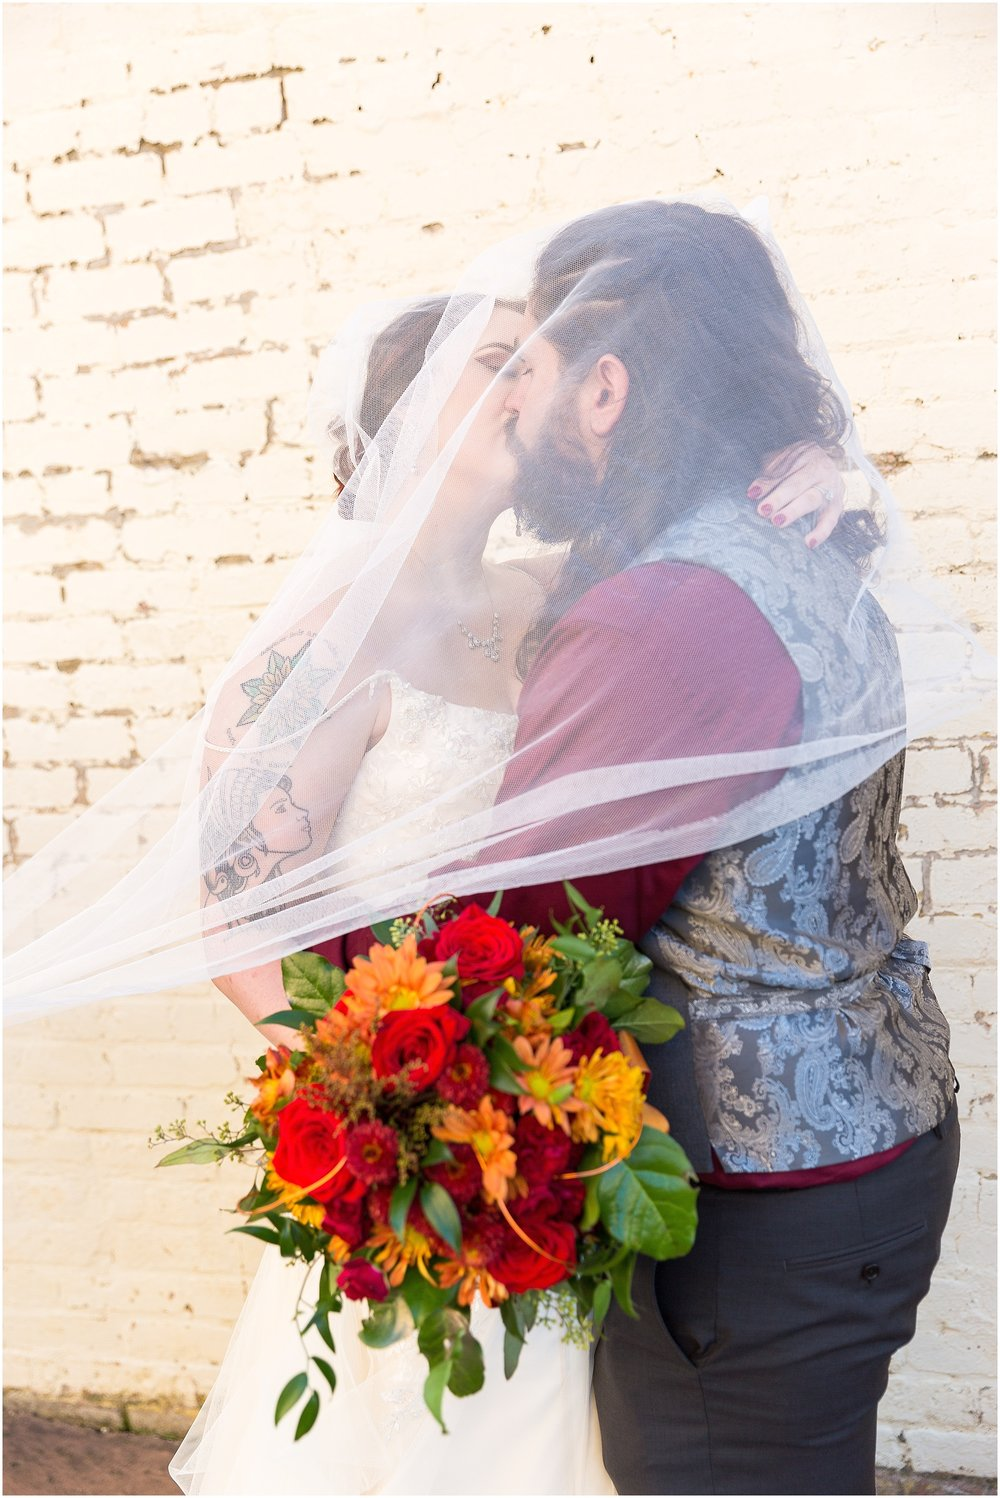 Bride and groom kiss under veil - Jason & Melaina Photography - http://jasonandmelaina.com